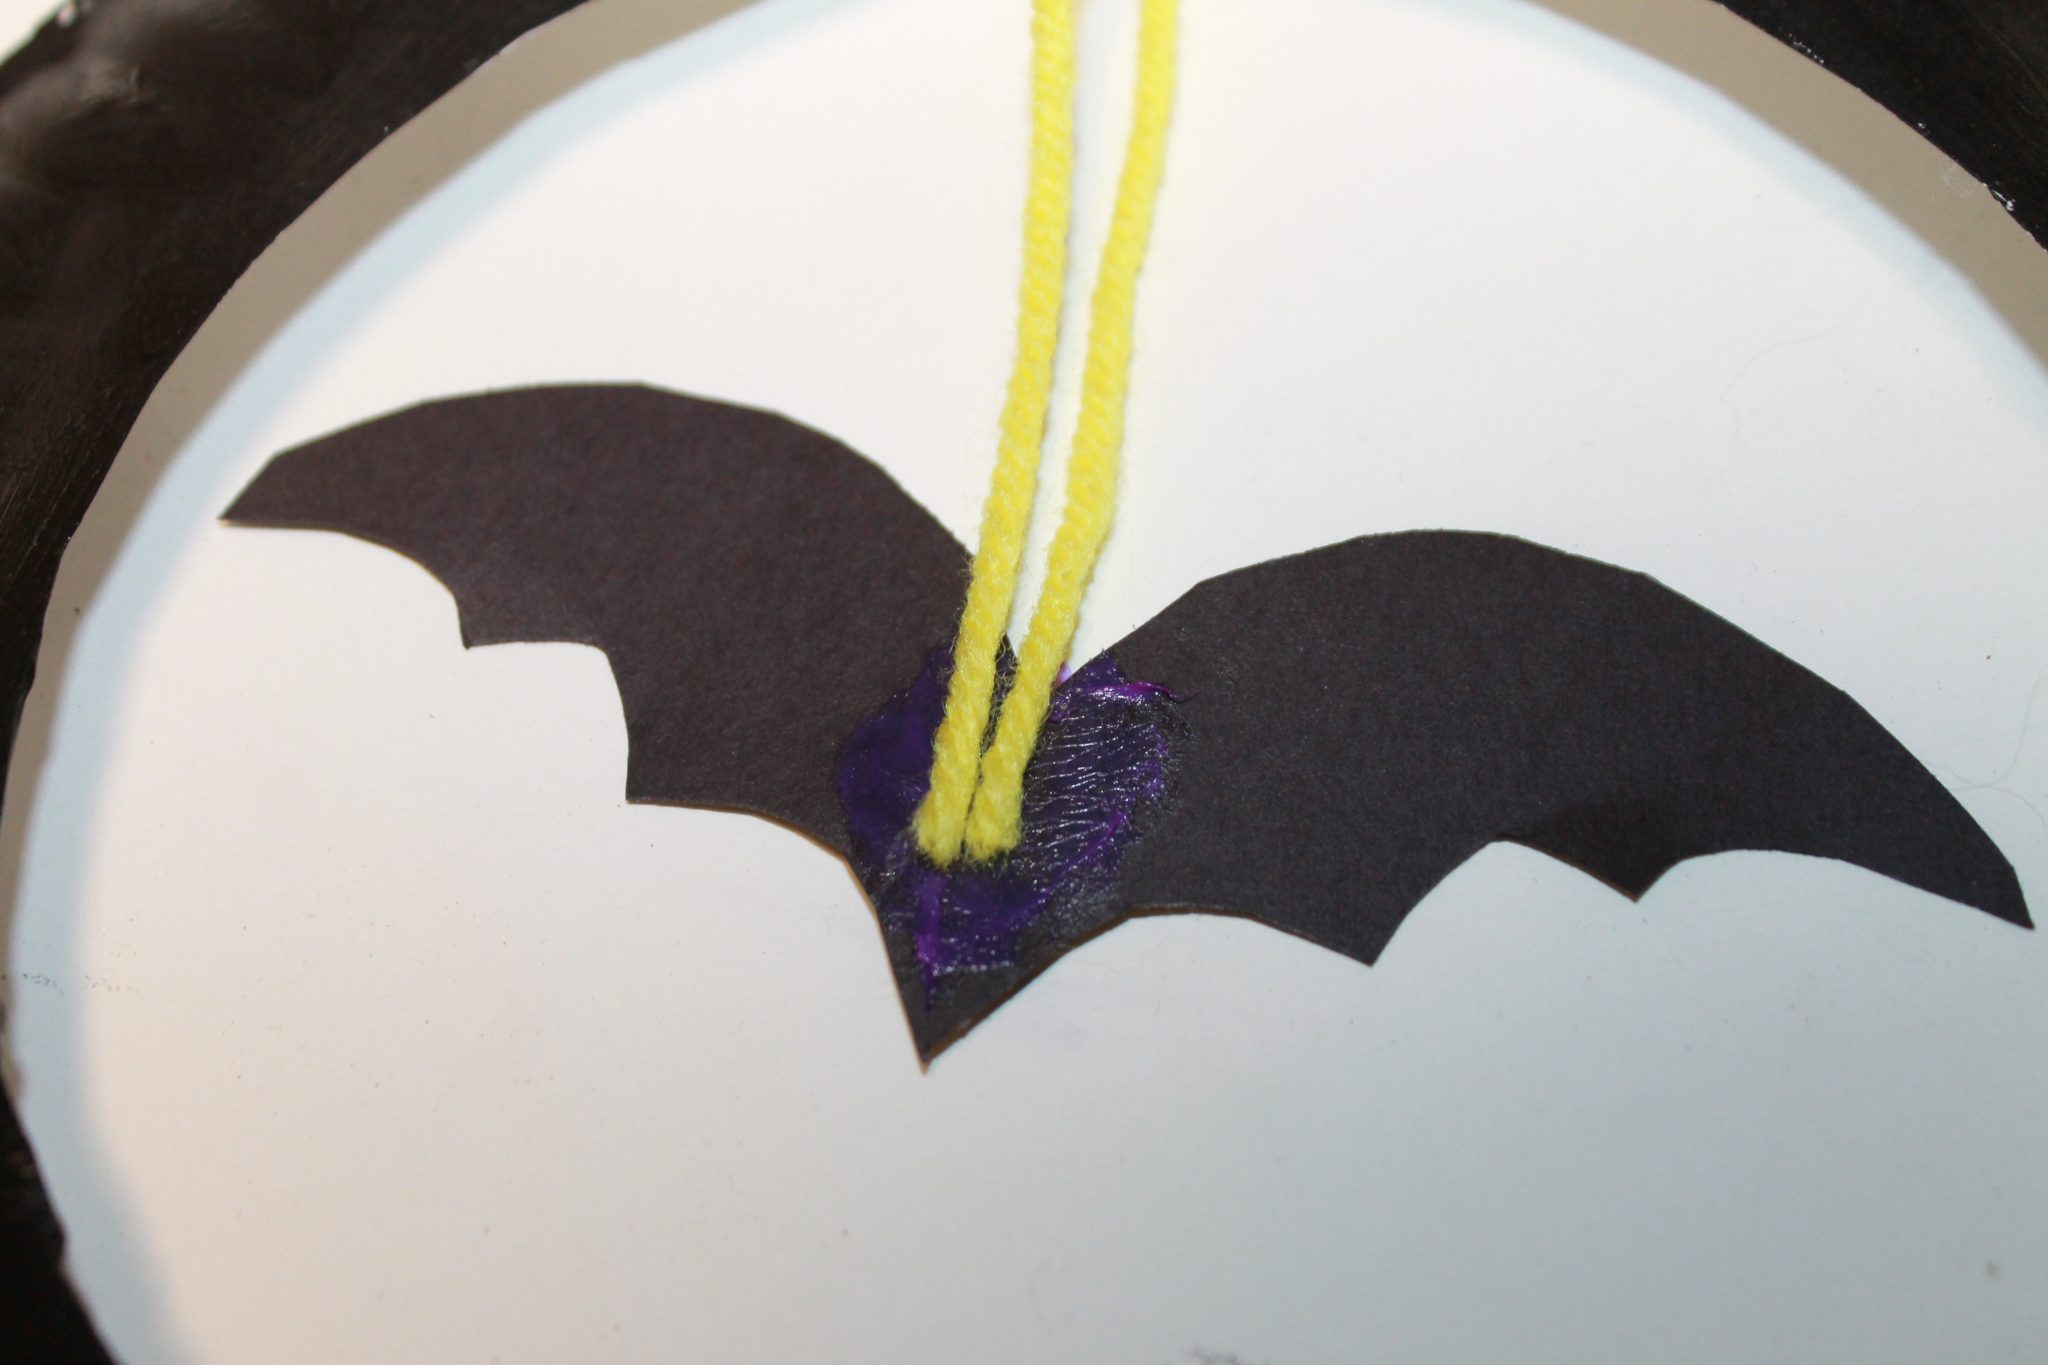 Flip the paper plate over and glue your wax paper tissue side up to the back of your painted paper plate. Glue the other paper plate over the top. & Flying Bats Sun Catcher Craft \u2013 The Pinterested Parent